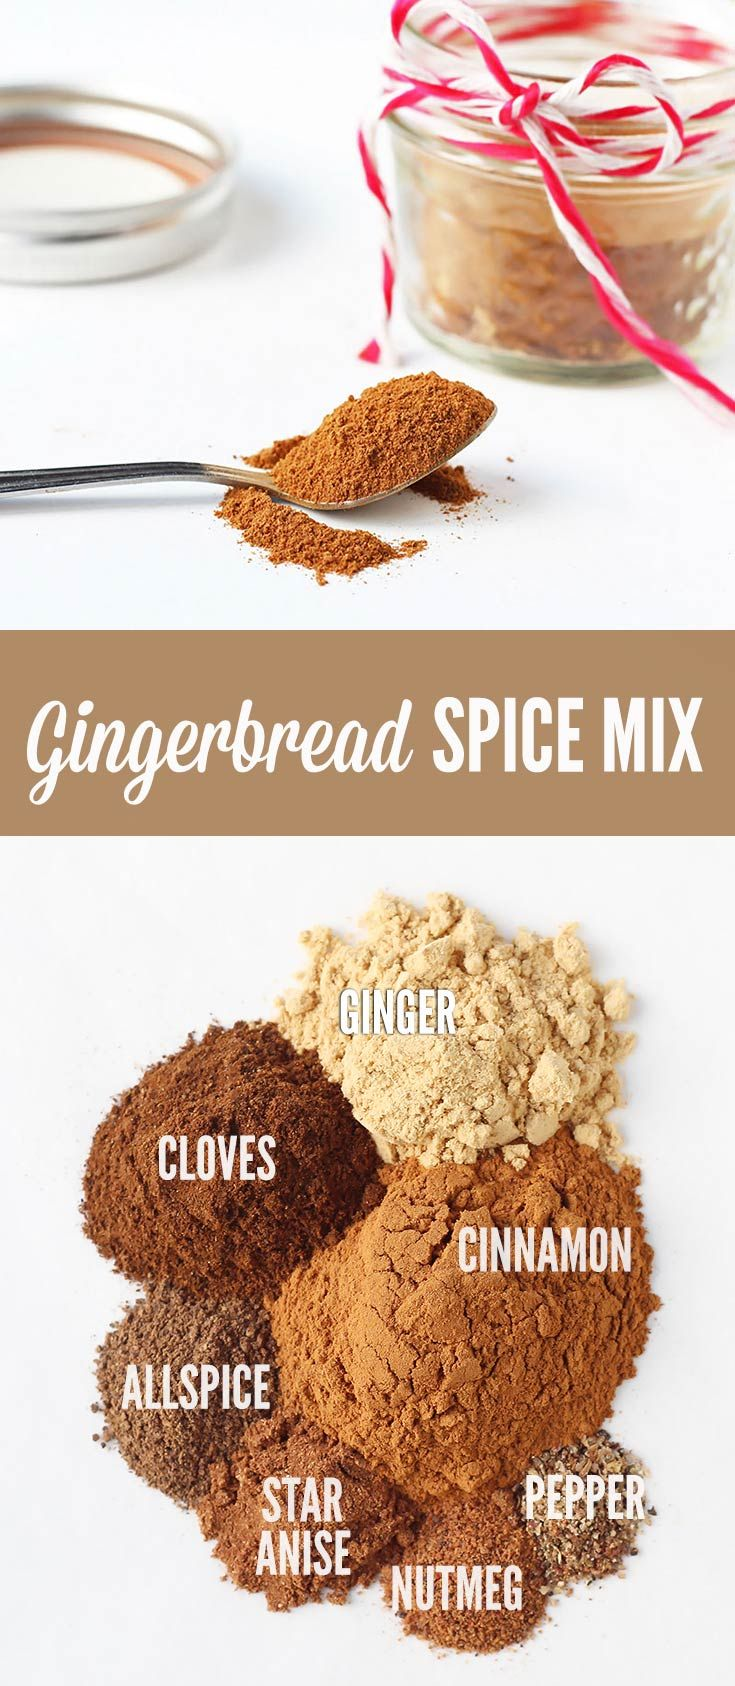 Make your own Gingerbread Spice Mix at home to use all throughout the holiday season to give baked goods a cozy, aromatic spice flavor.